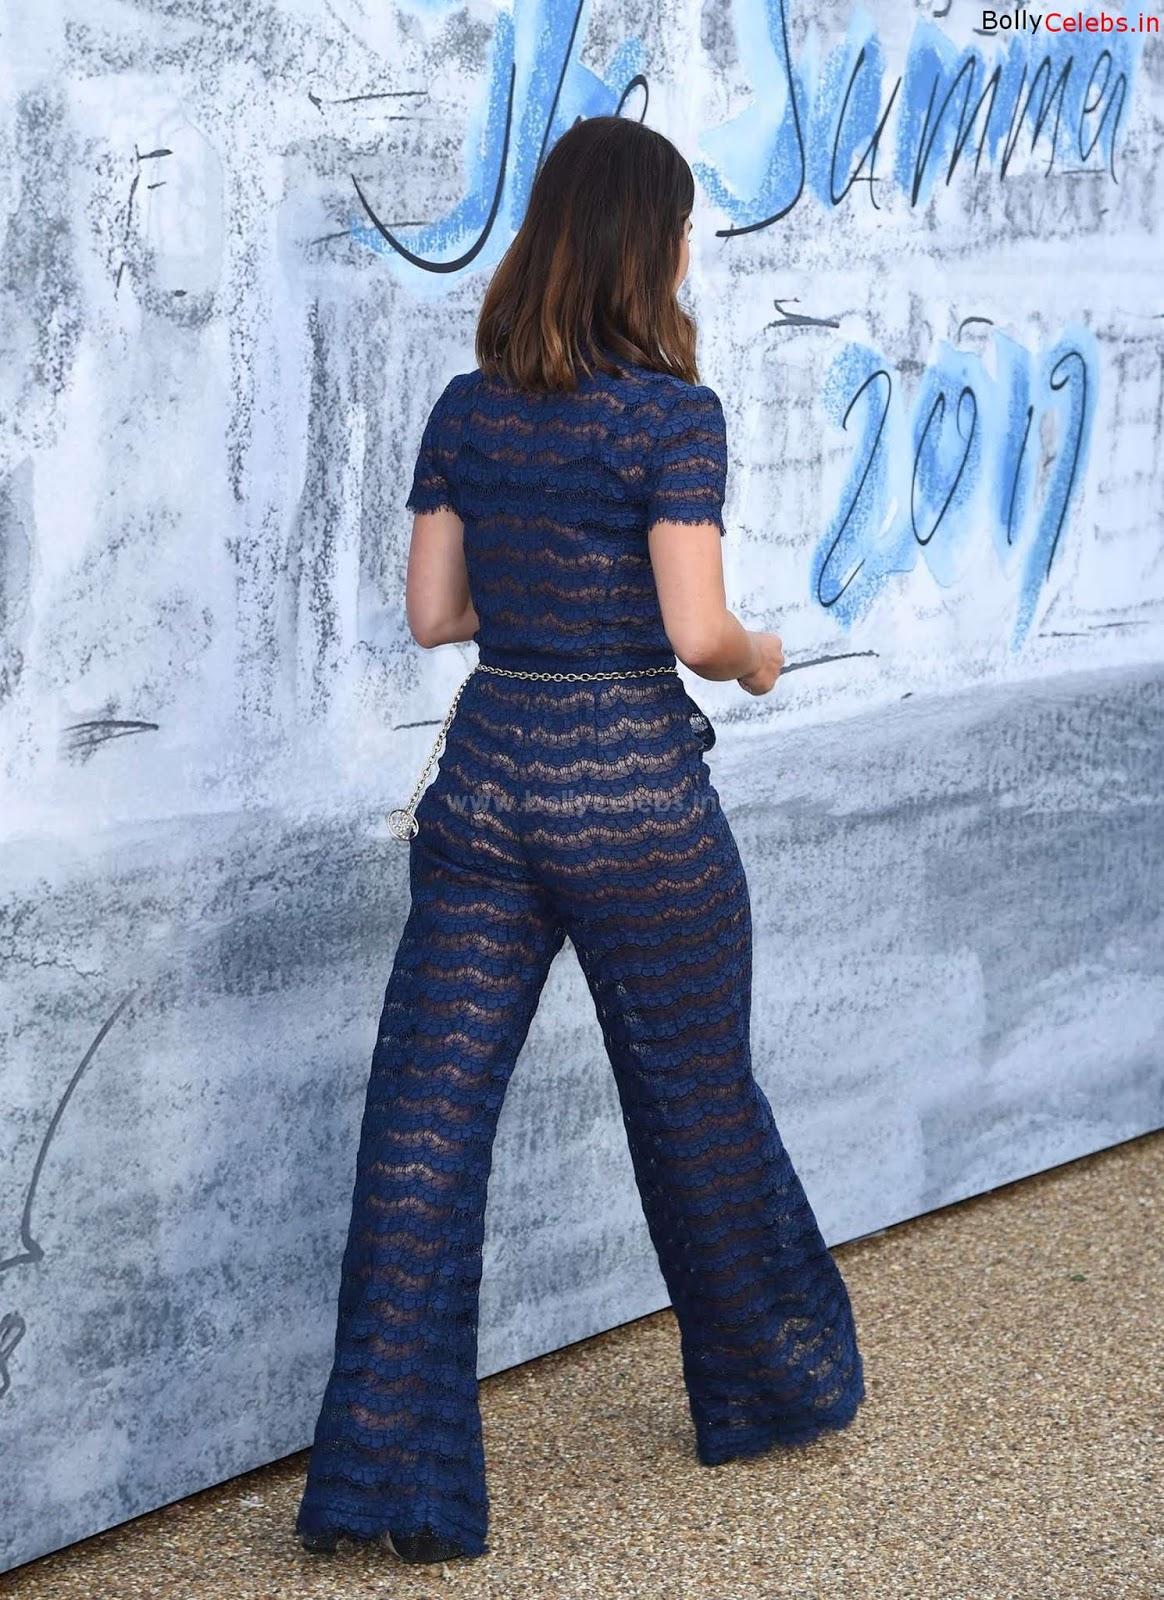 Jenna+Coleman+in+beautiful+Blue+See+Through+Jumpsuit+%7E+bollycelebs.in+Exclusive+Celebrity+Pics+001.jpg